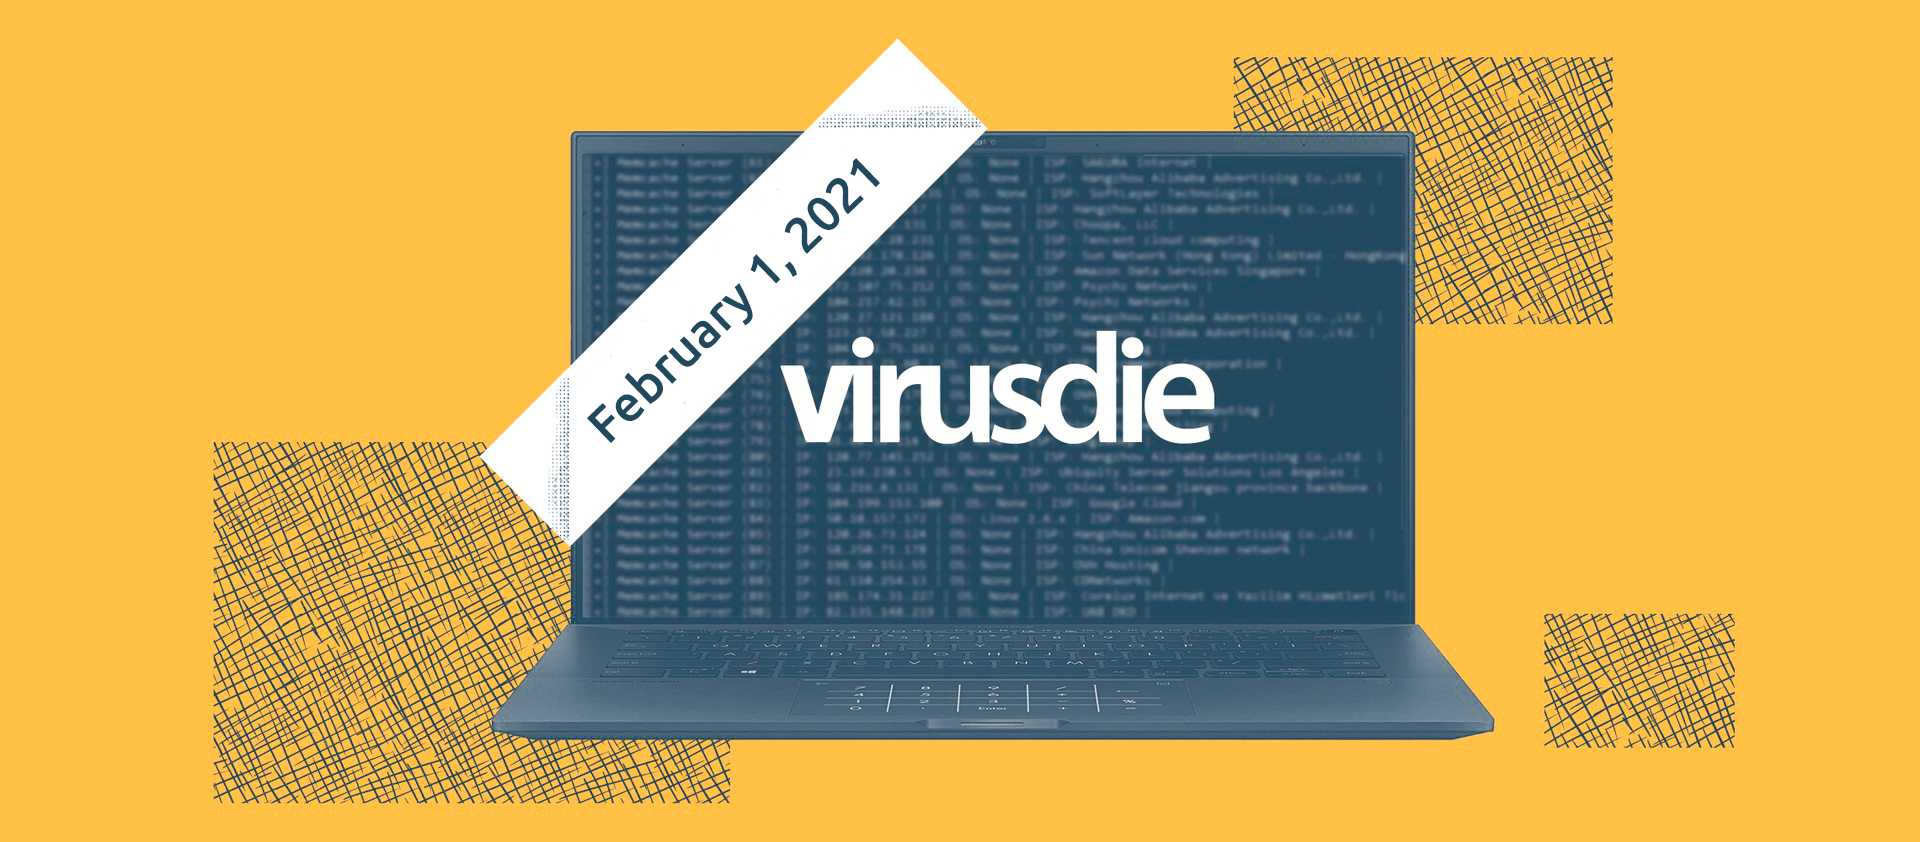 Virusdie will no longer be offered starting February 1, 2021